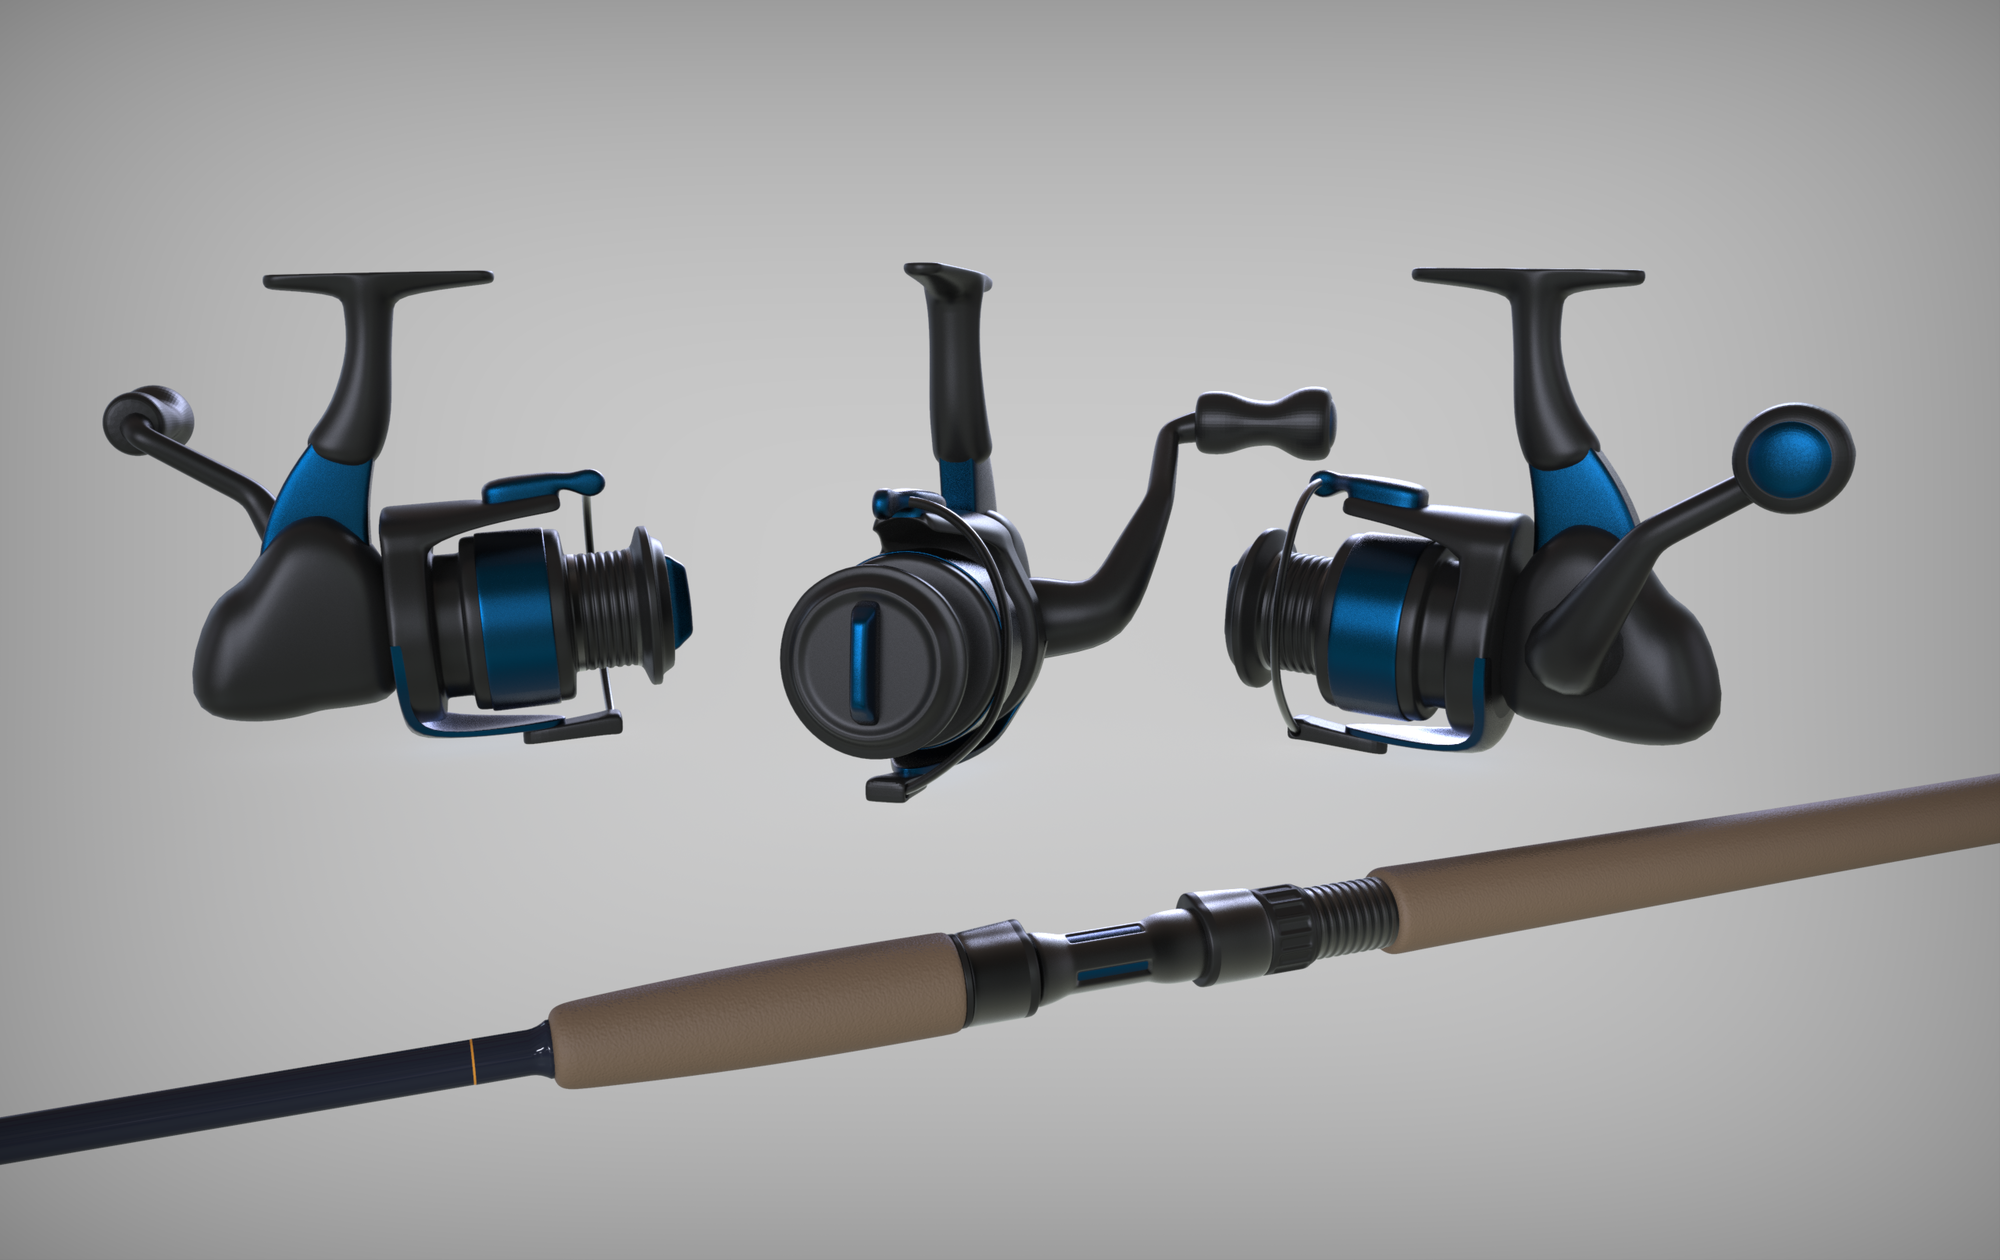 FishingRod01.44.png